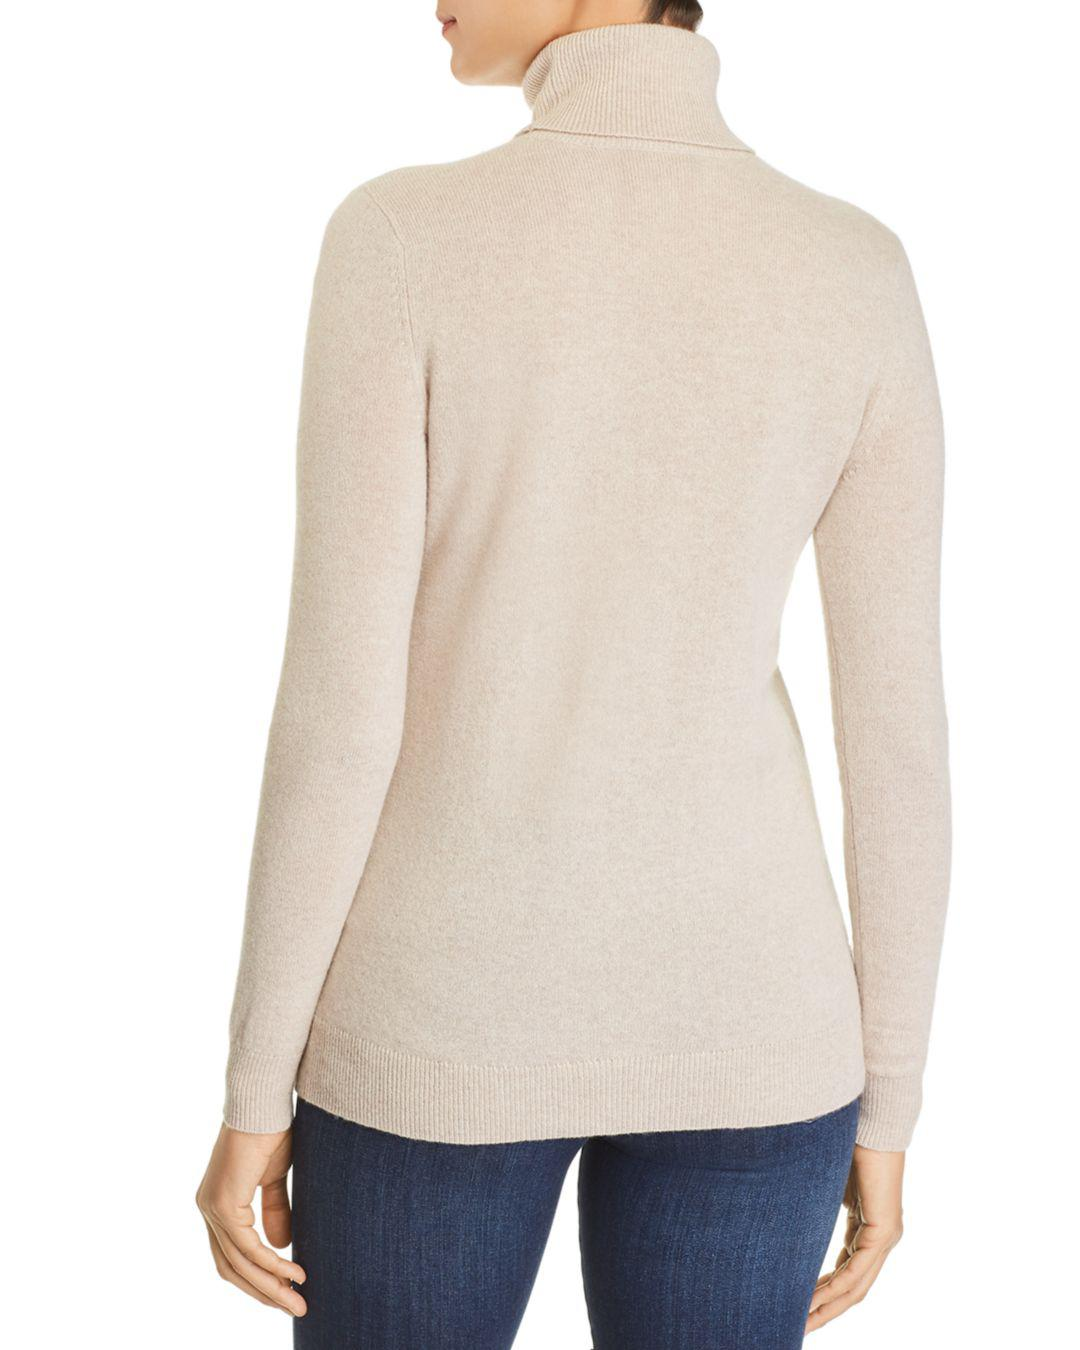 Lyst - C By Bloomingdale s Cashmere Turtleneck Sweater in Natural f72668228